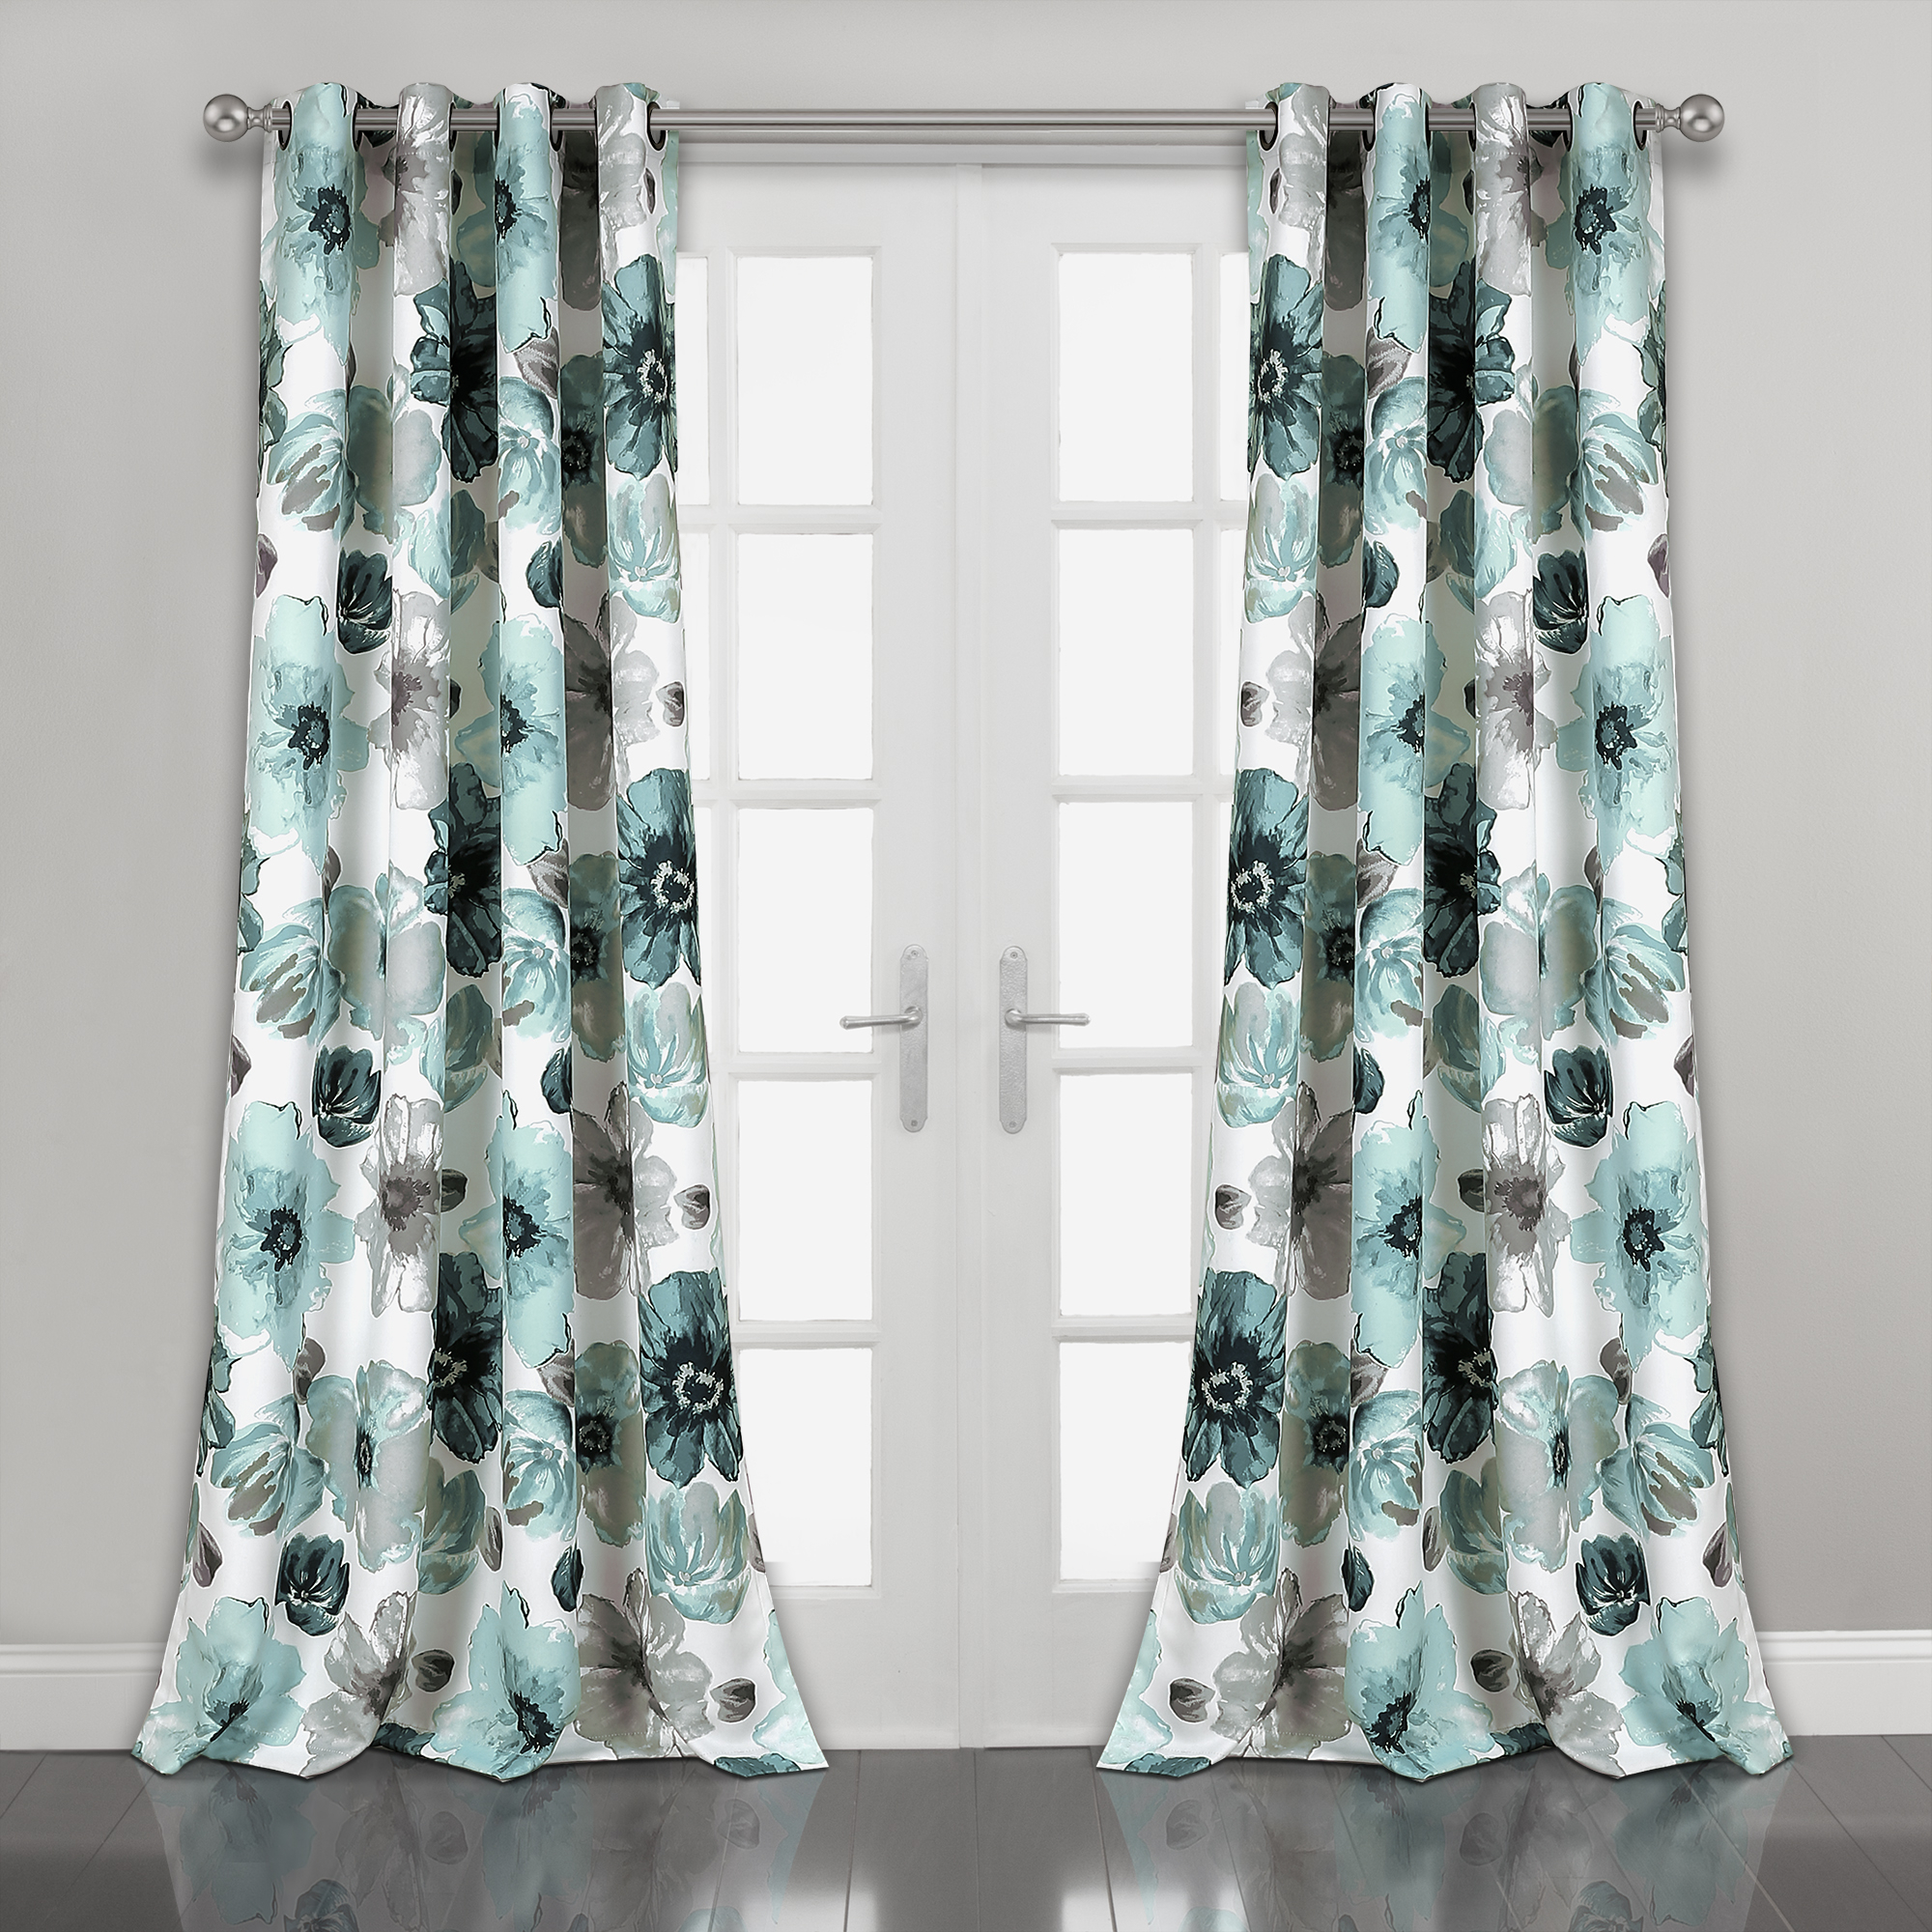 Leah Room Darkening Window Curtain Panels Blue 52x95 Set Pertaining To Popular Floral Pattern Room Darkening Window Curtain Panel Pairs (View 16 of 20)